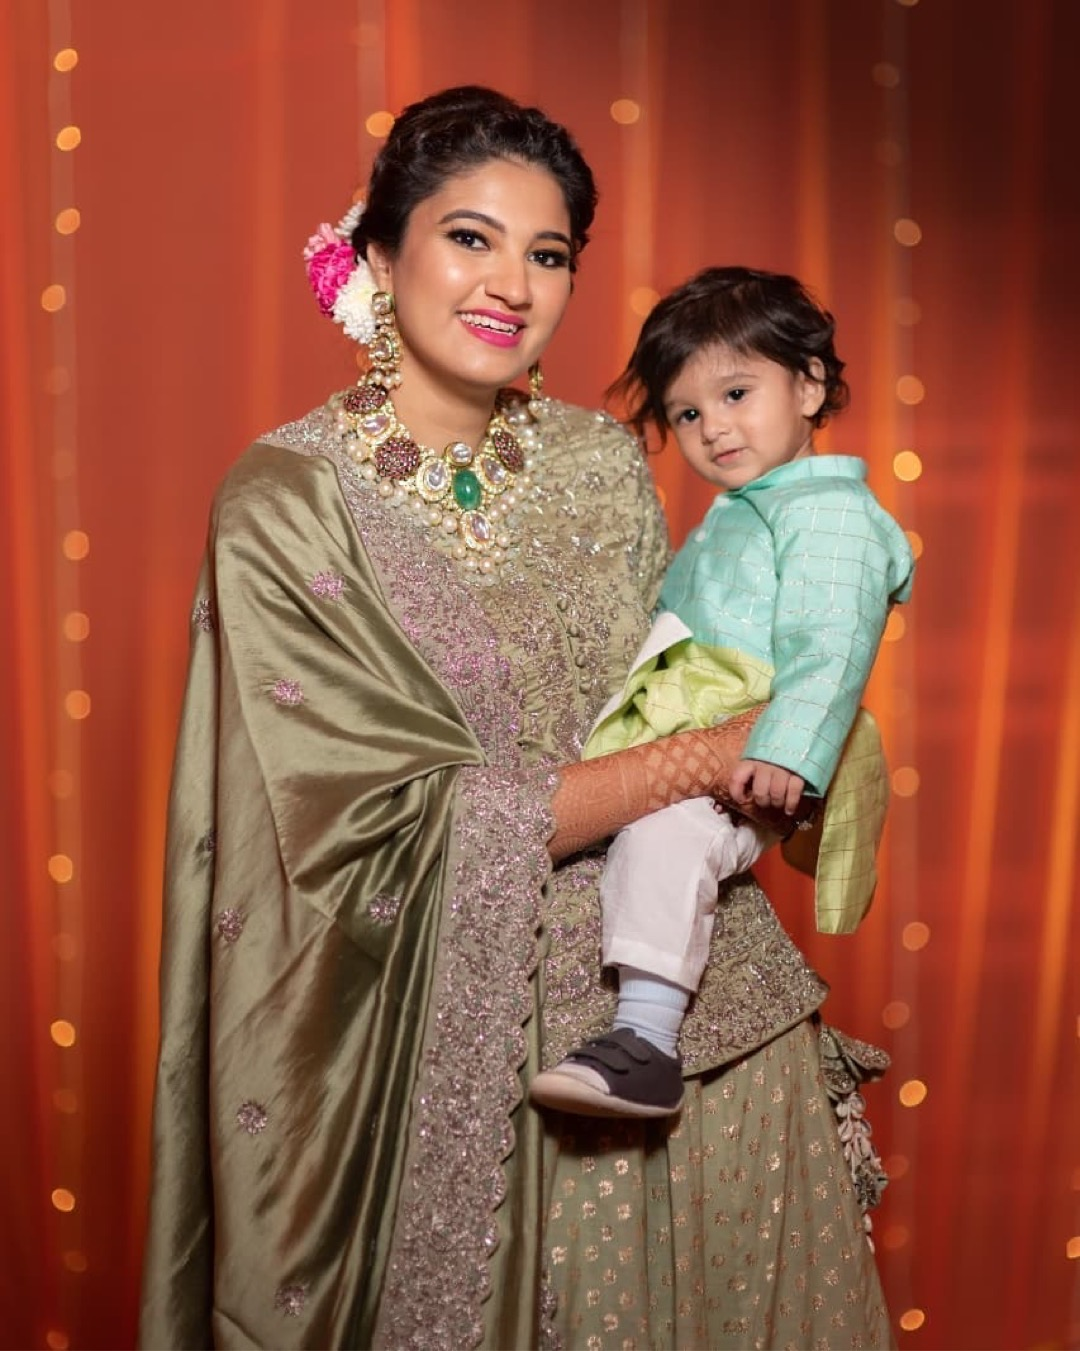 indian bride | polki dimond | bridal makeup for Indian brides | bridal outfit | designer brides | indian celeb wedding | #celebrity #indianceleb #celebwedding #polkidiamond #polkinecklace #anammirzawedding | anam mirza wedding | bridal lehenga | green muslim brides | green lehenga | bridal outfit| | #wittyvows #bridesofwittyvows